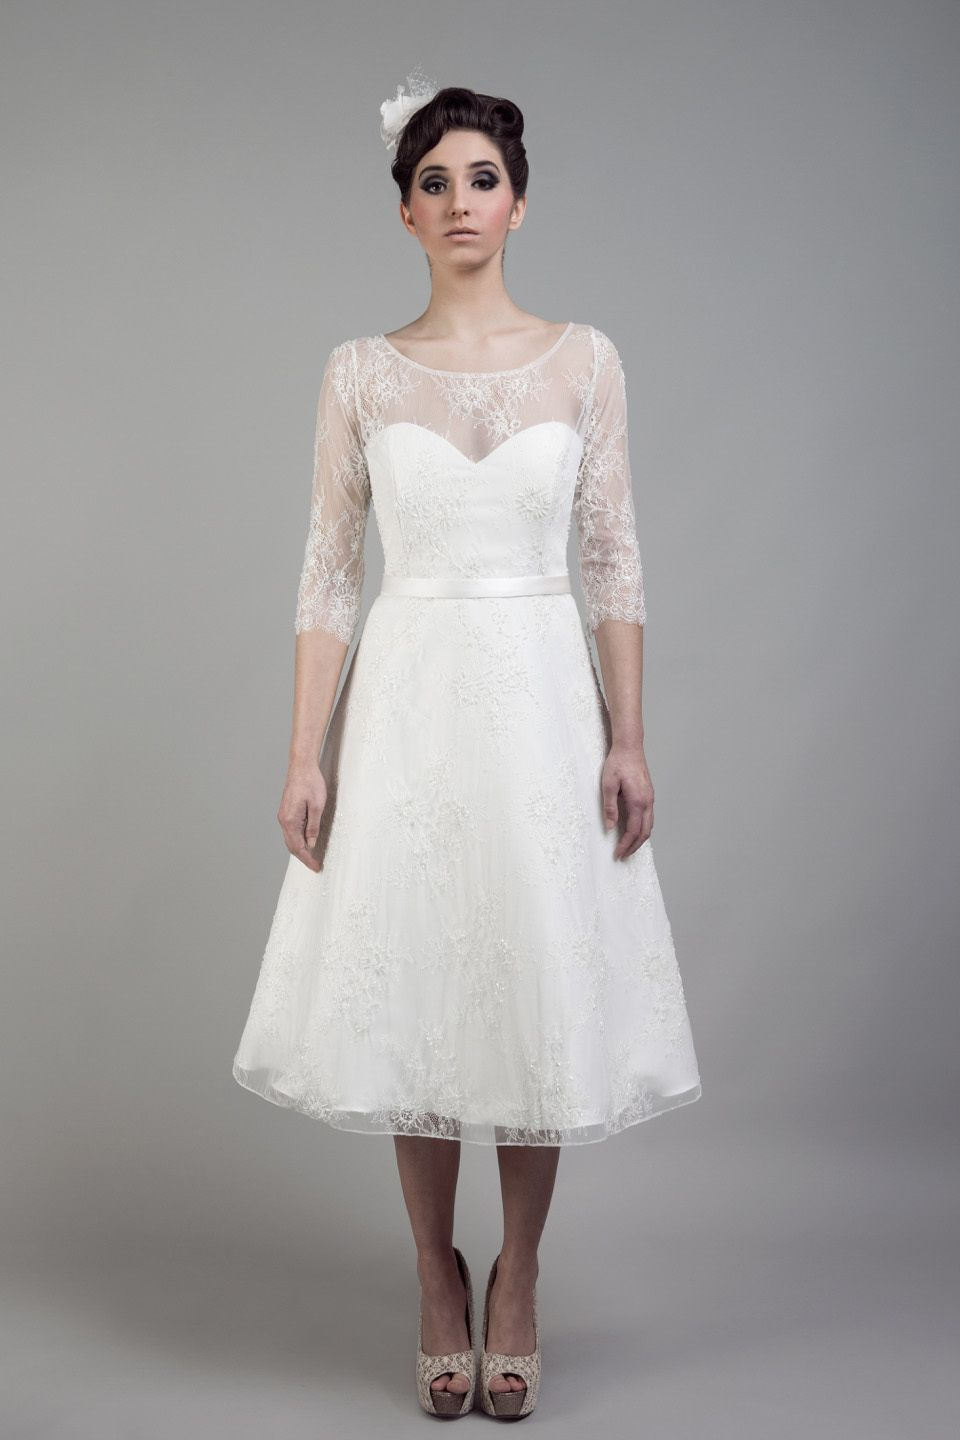 Wedding Dress For Short People How To A Check More At Http